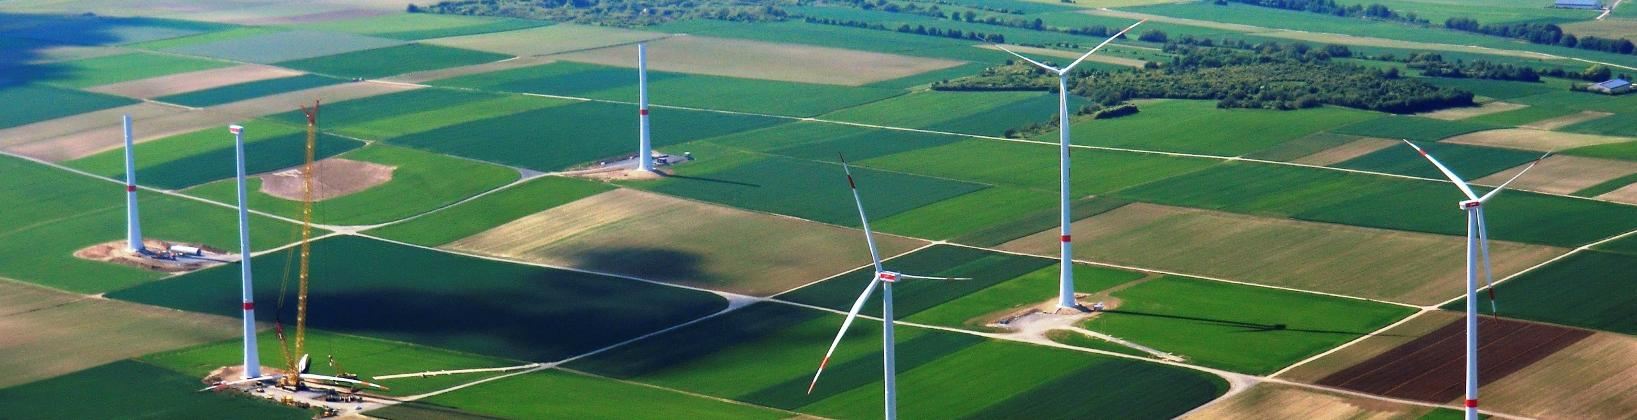 Windpark Gundersheim